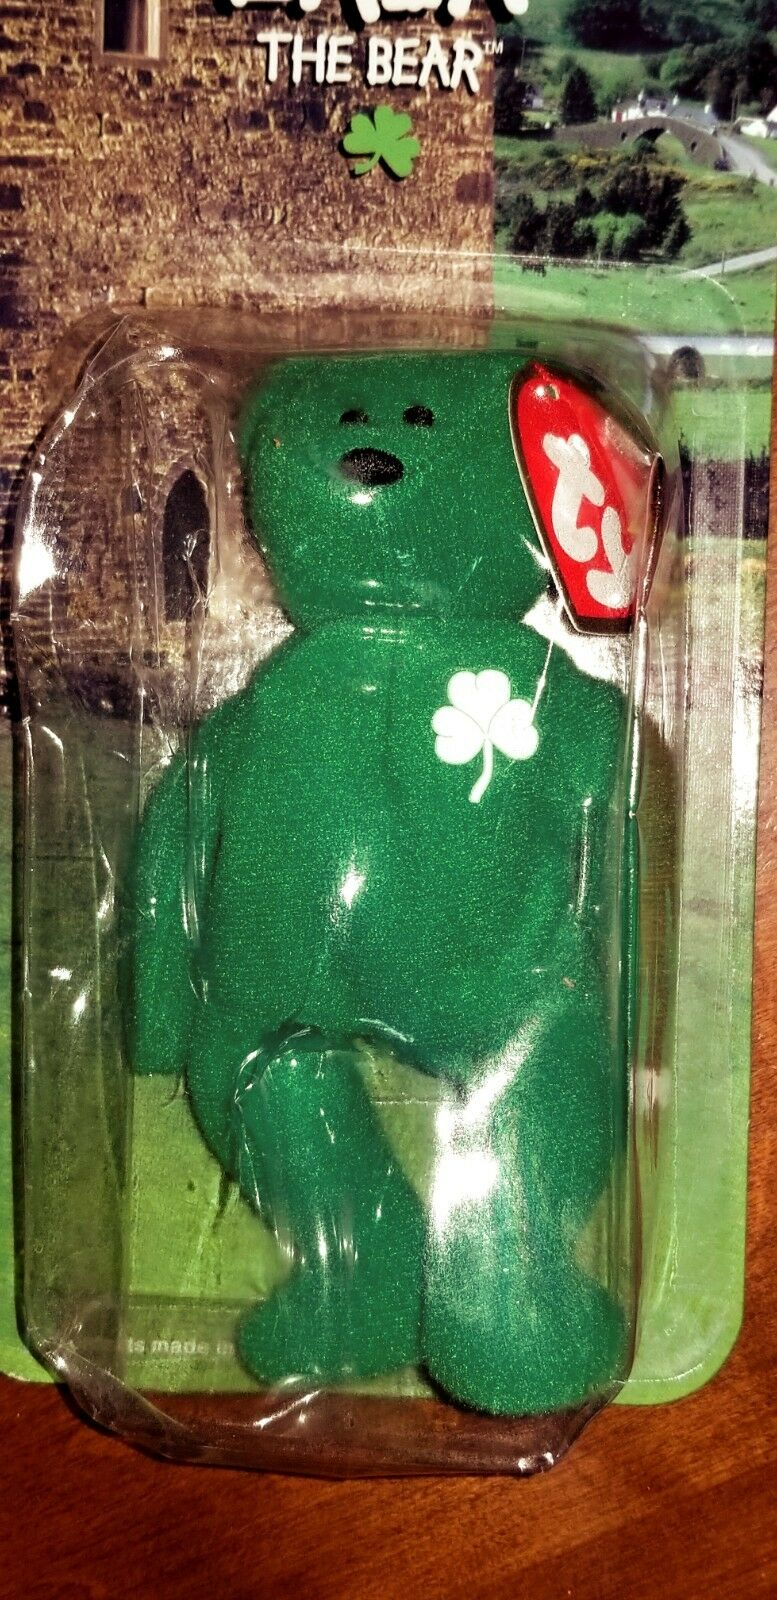 Erin Erin Erin The Bear- McDonald's Ty Beanie Baby with 1993 Tush Tag Error. 1 owner eb1541